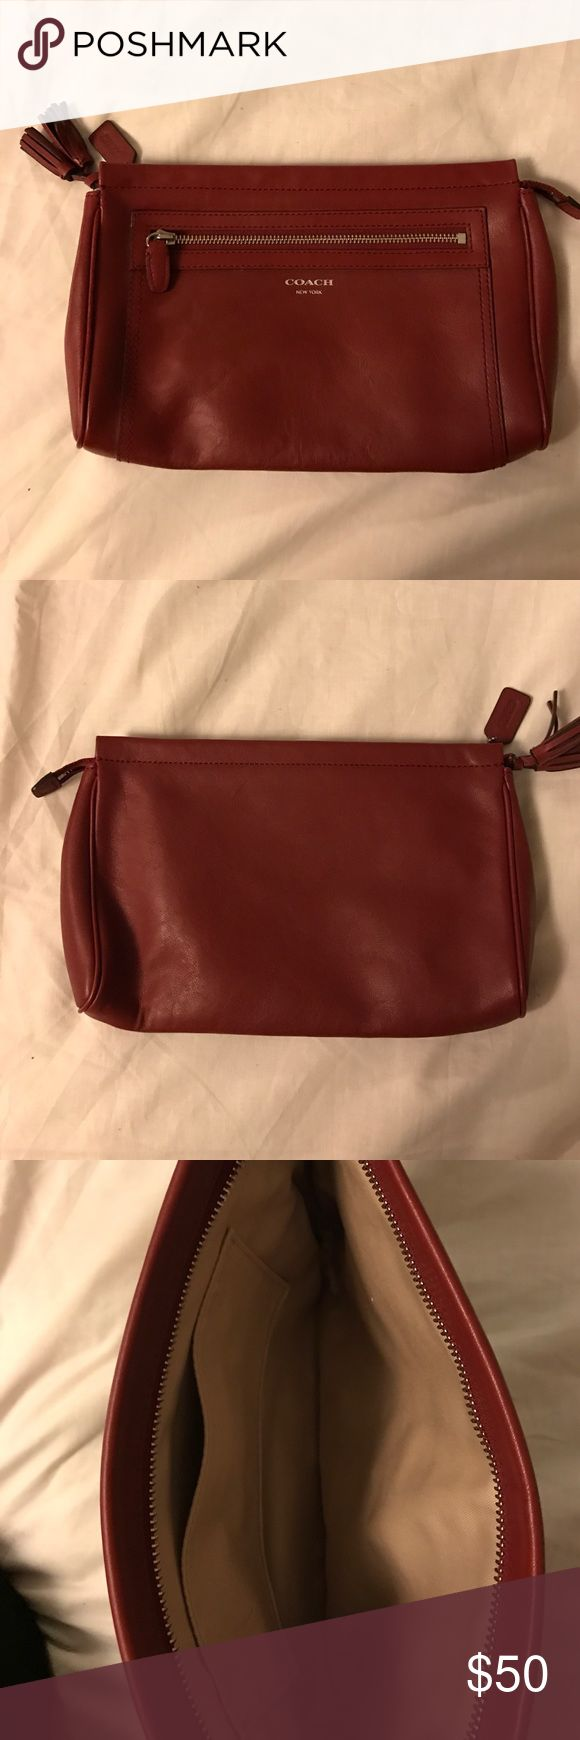 Coach Clutch Brand new coach clutch in a ox blood color. Large enough for everyday use or a night out Coach Bags Clutches & Wristlets